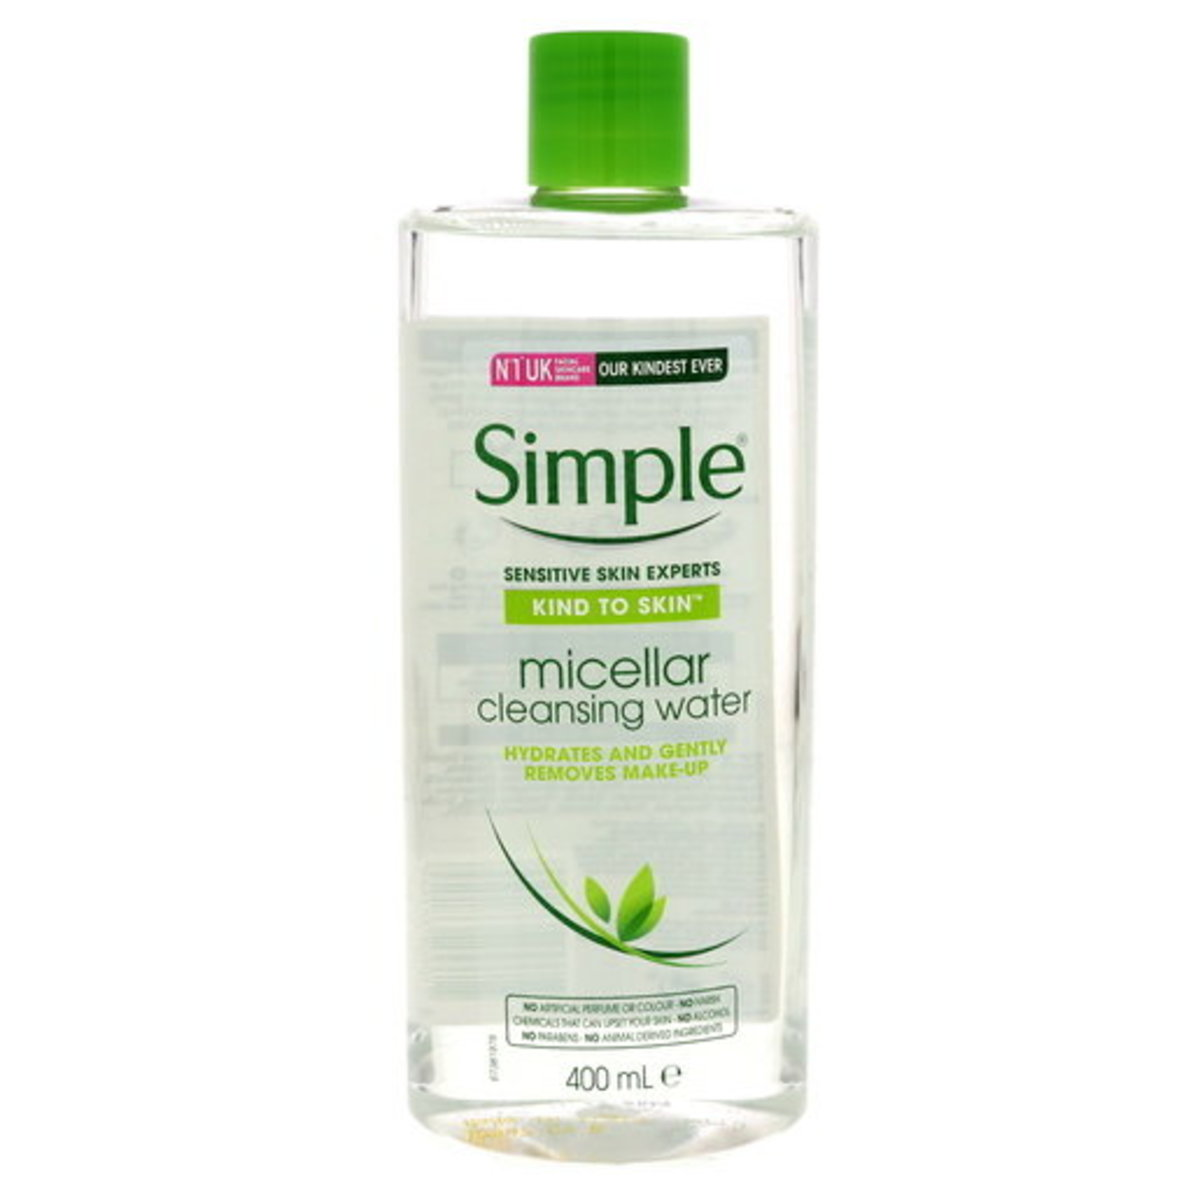 SIMPLE MICELLAR CLEANSING WATER 400ML (Authorized dealer import)